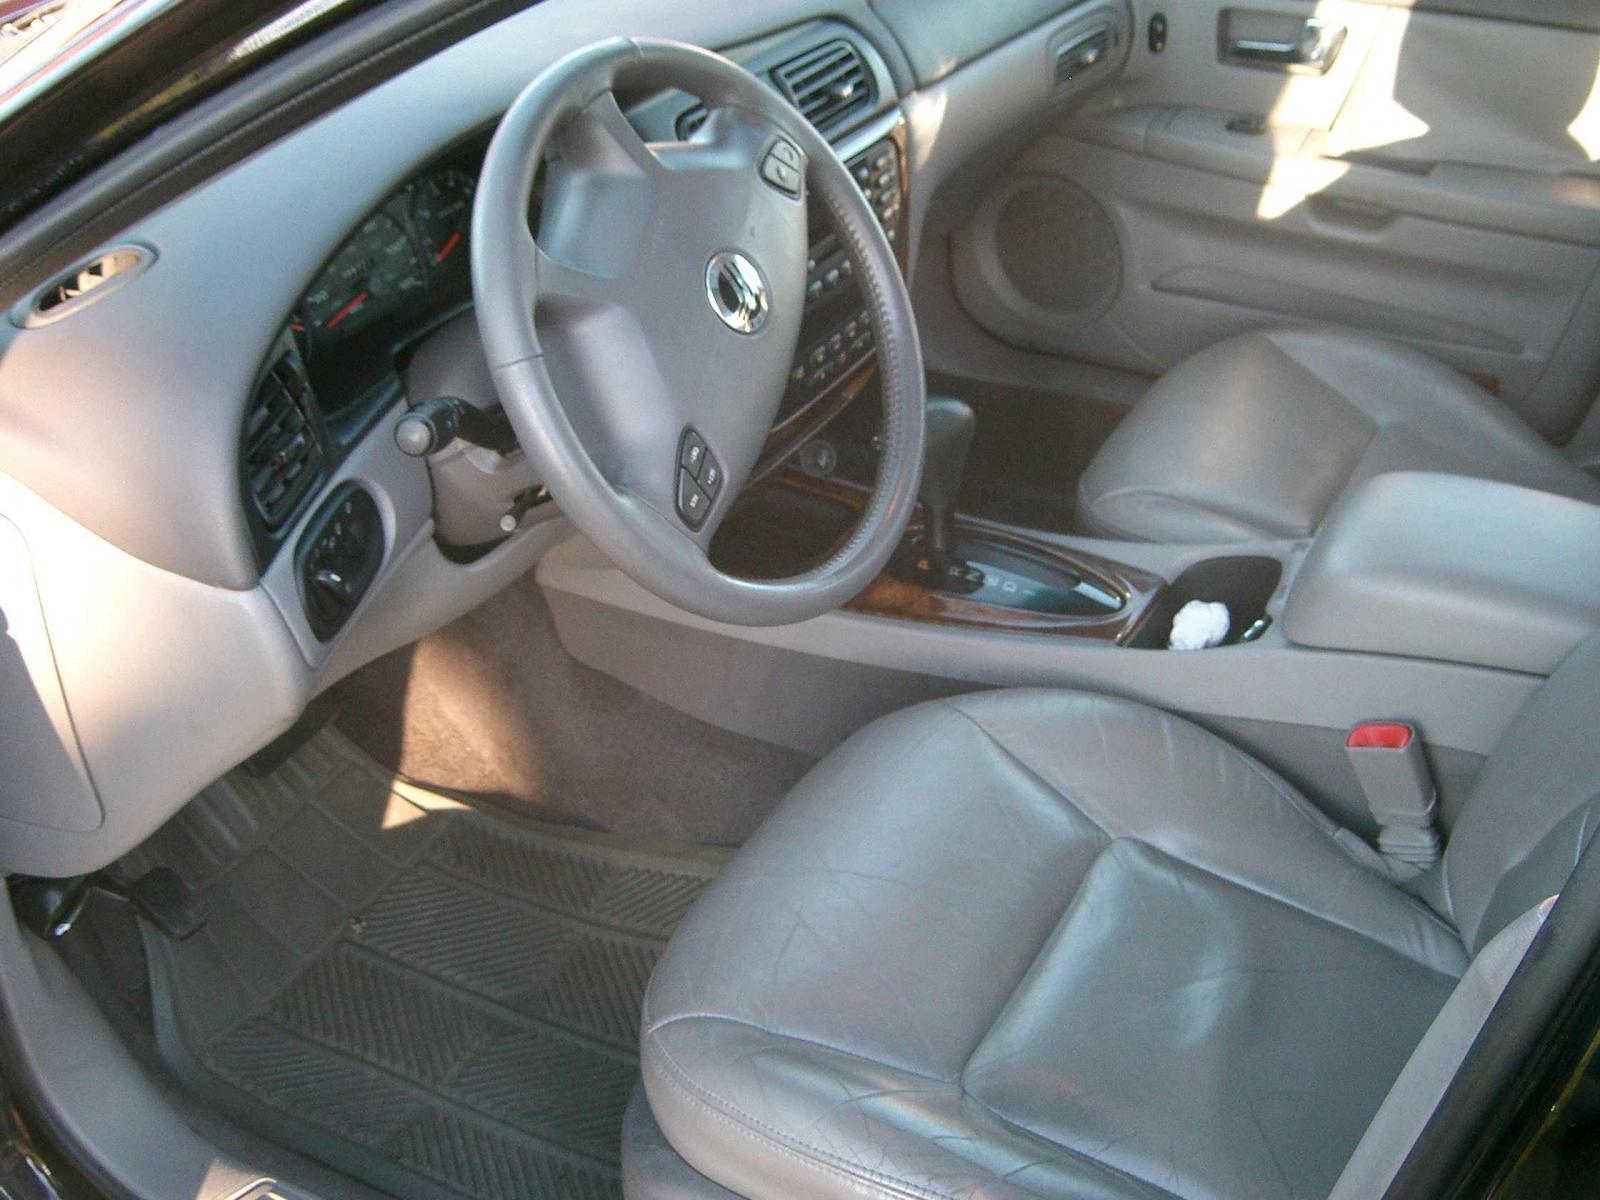 New purchase - report and minor questions.-sable-drivers-seat.jpg